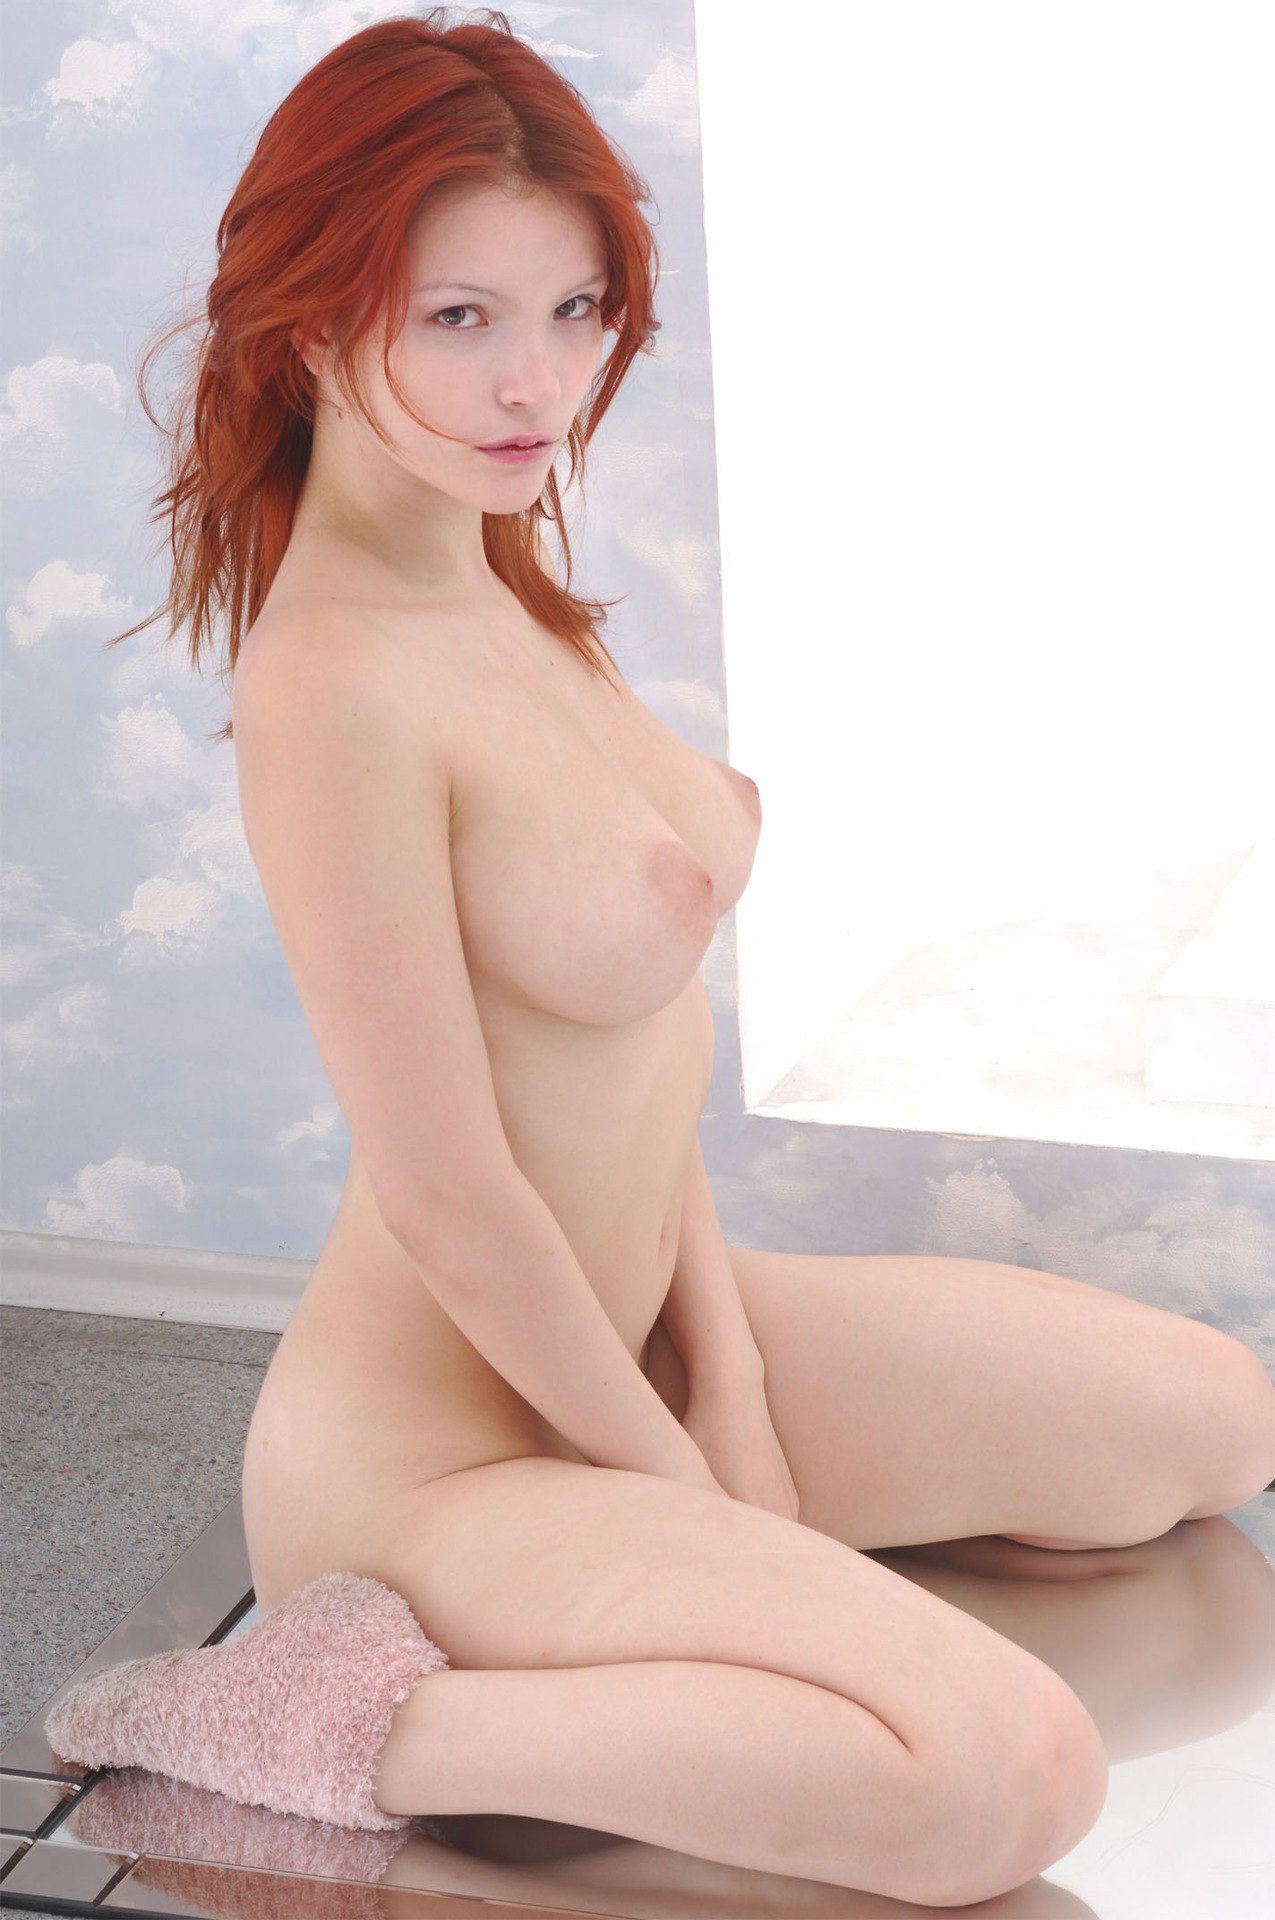 Sexy young redhead perky tits